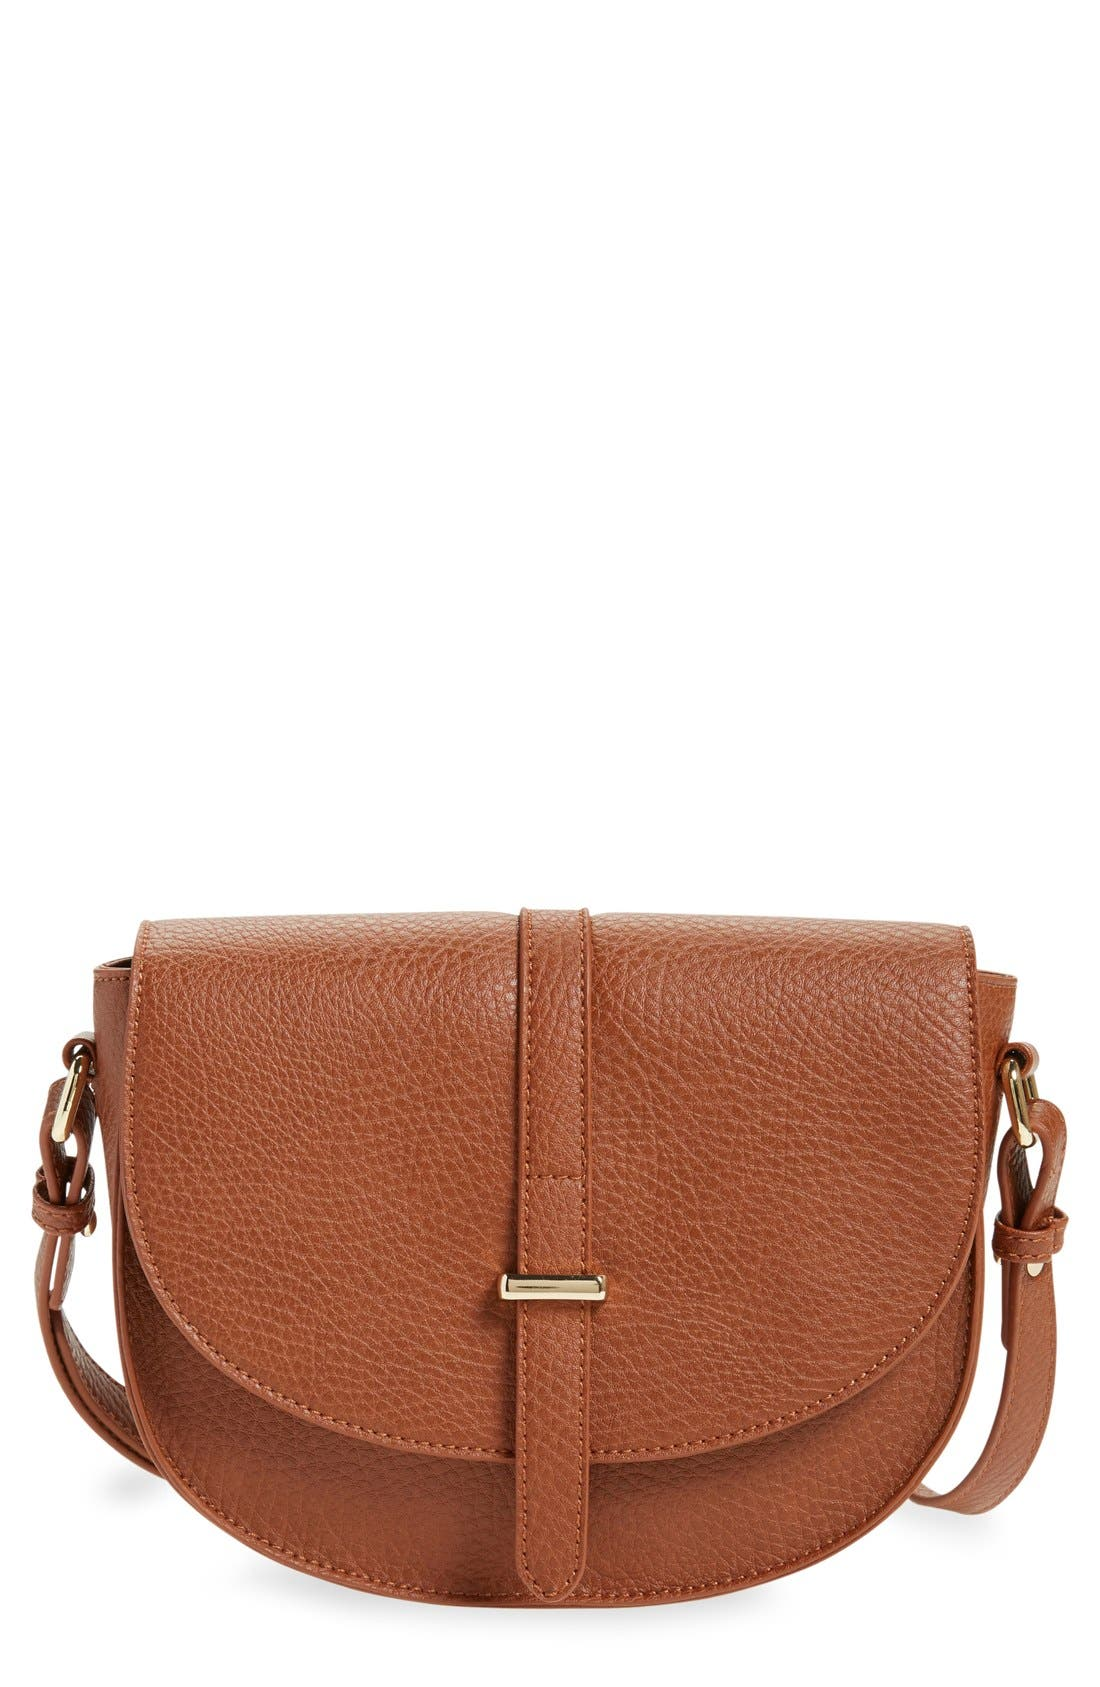 Main Image - BP. Faux Leather Saddle Crossbody Bag